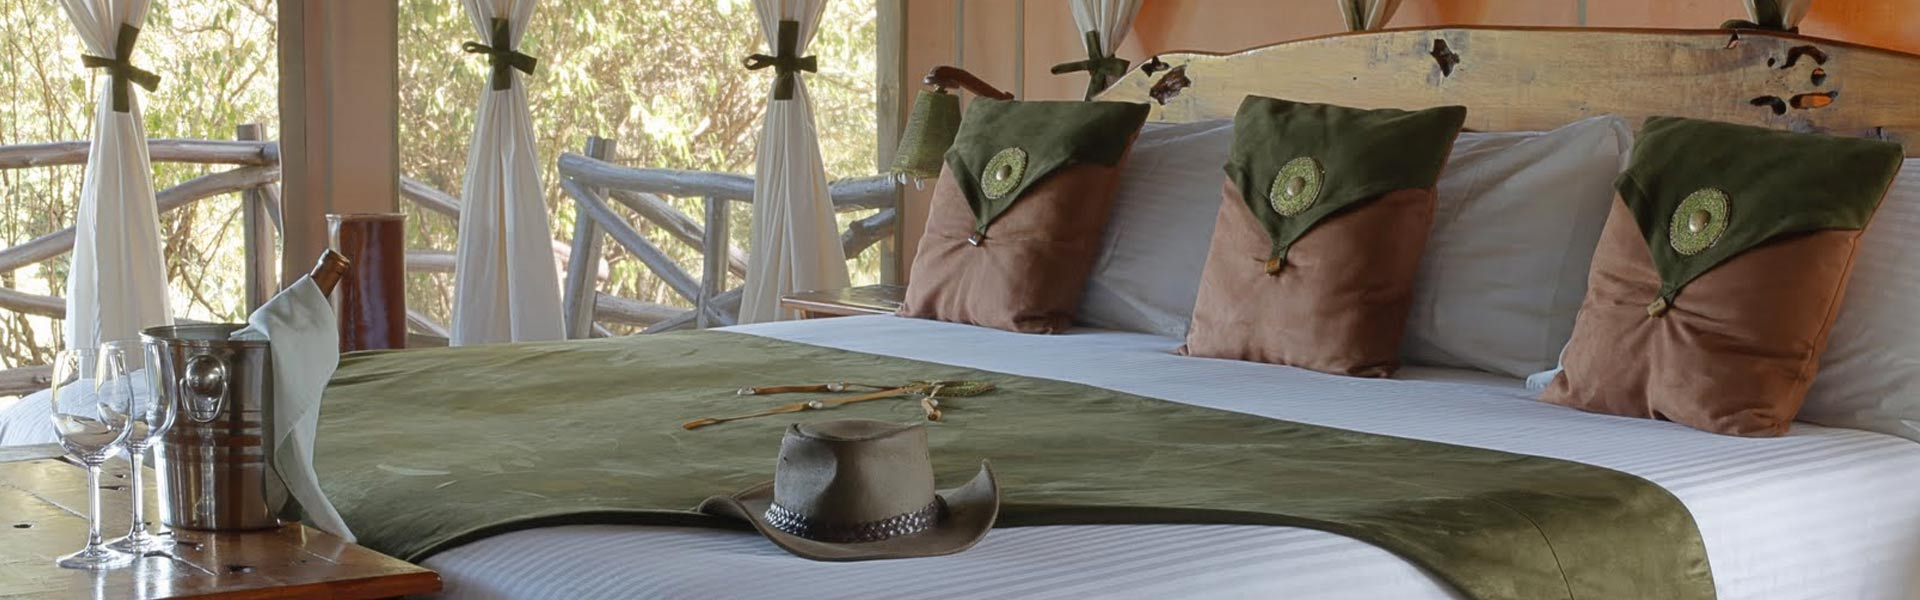 Kenya escapes safari luxury accommodation